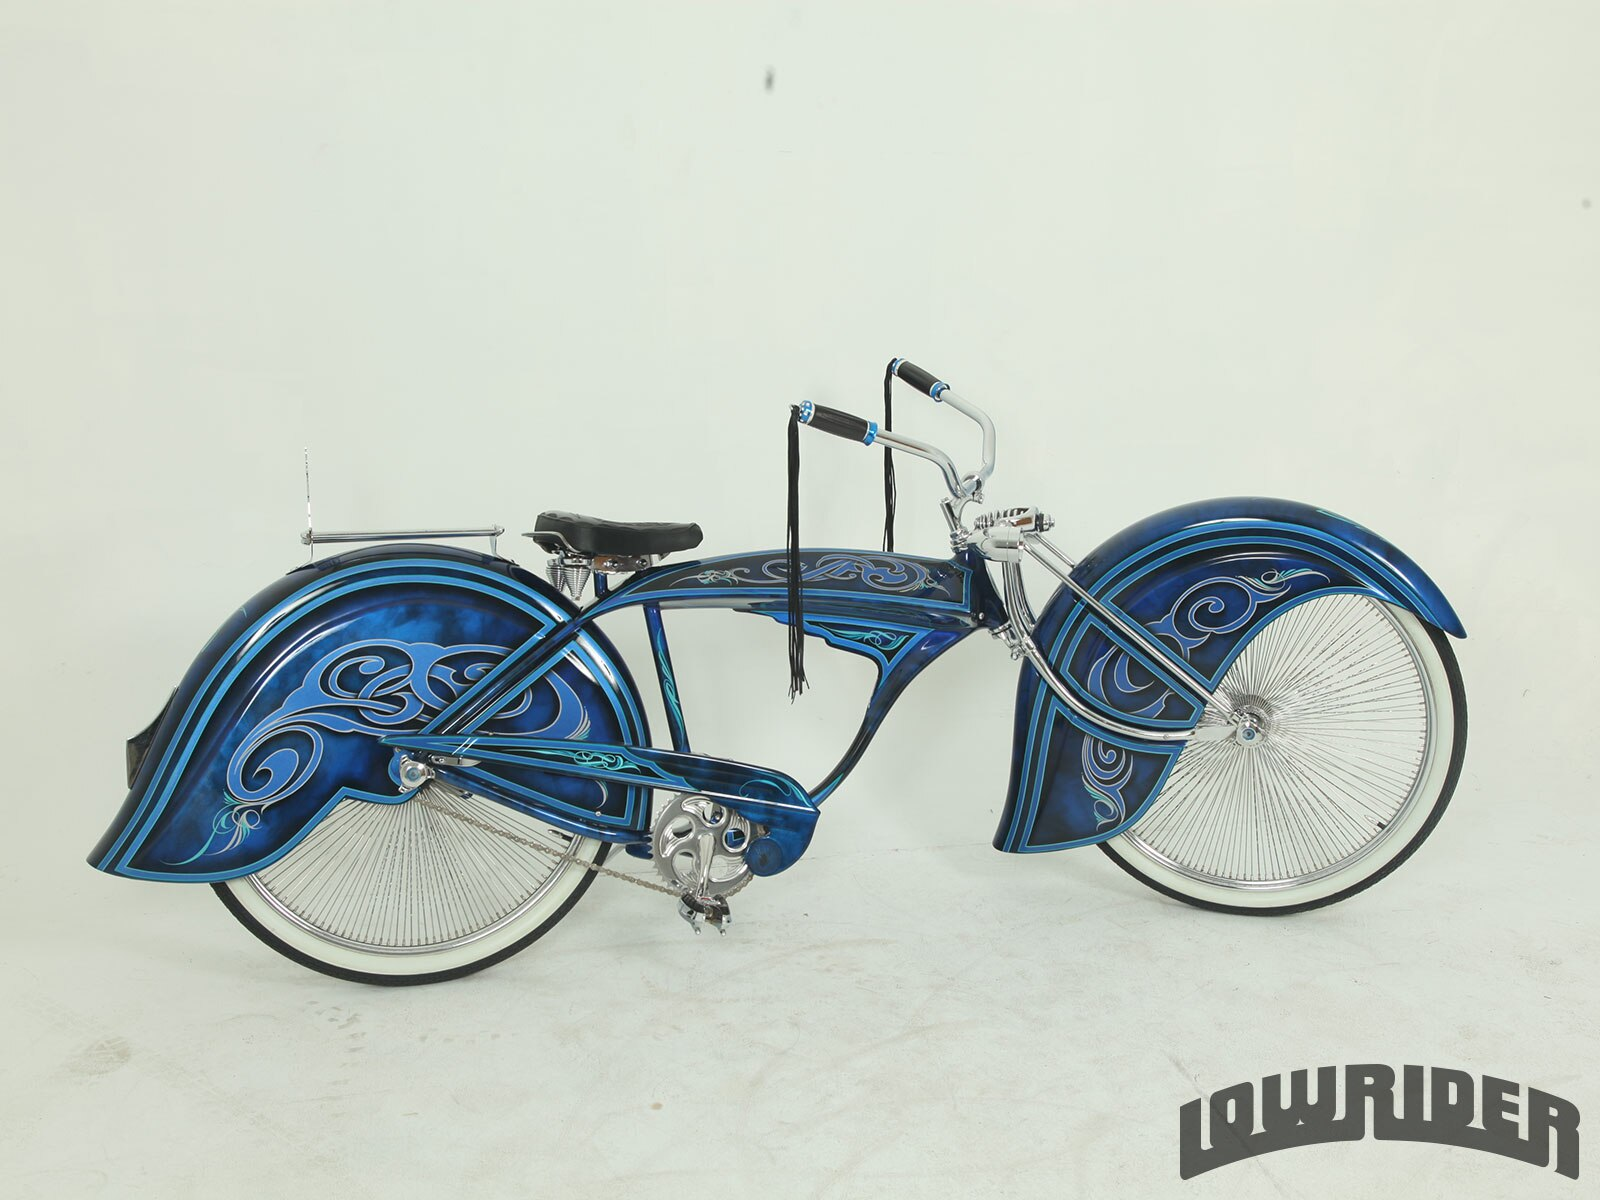 1954-schwinn-bicycle-right-side-view1